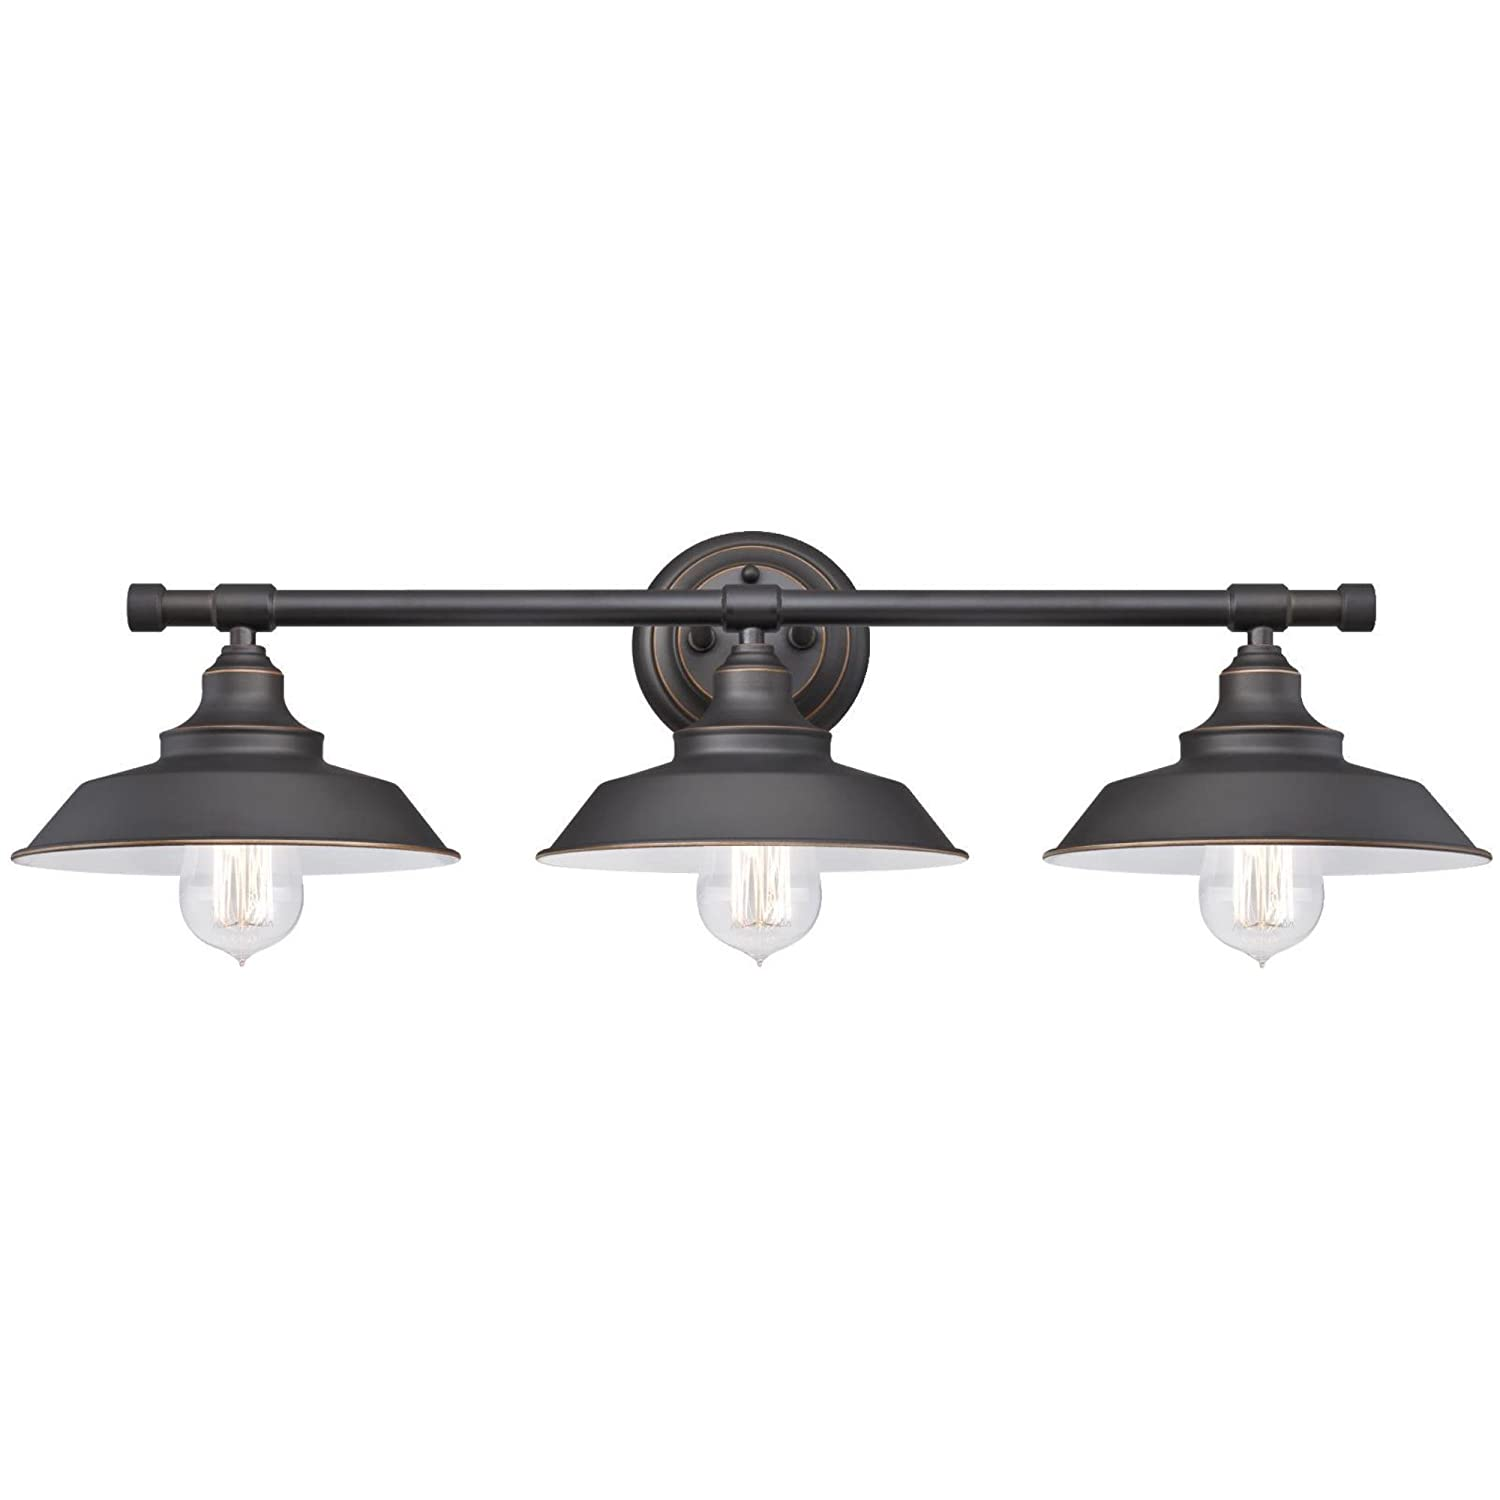 Amazon westinghouse 6343400 iron hill three light indoor wall amazon westinghouse 6343400 iron hill three light indoor wall fixture oil rubbed bronze finish with highlights and metal shades home improvement arubaitofo Gallery